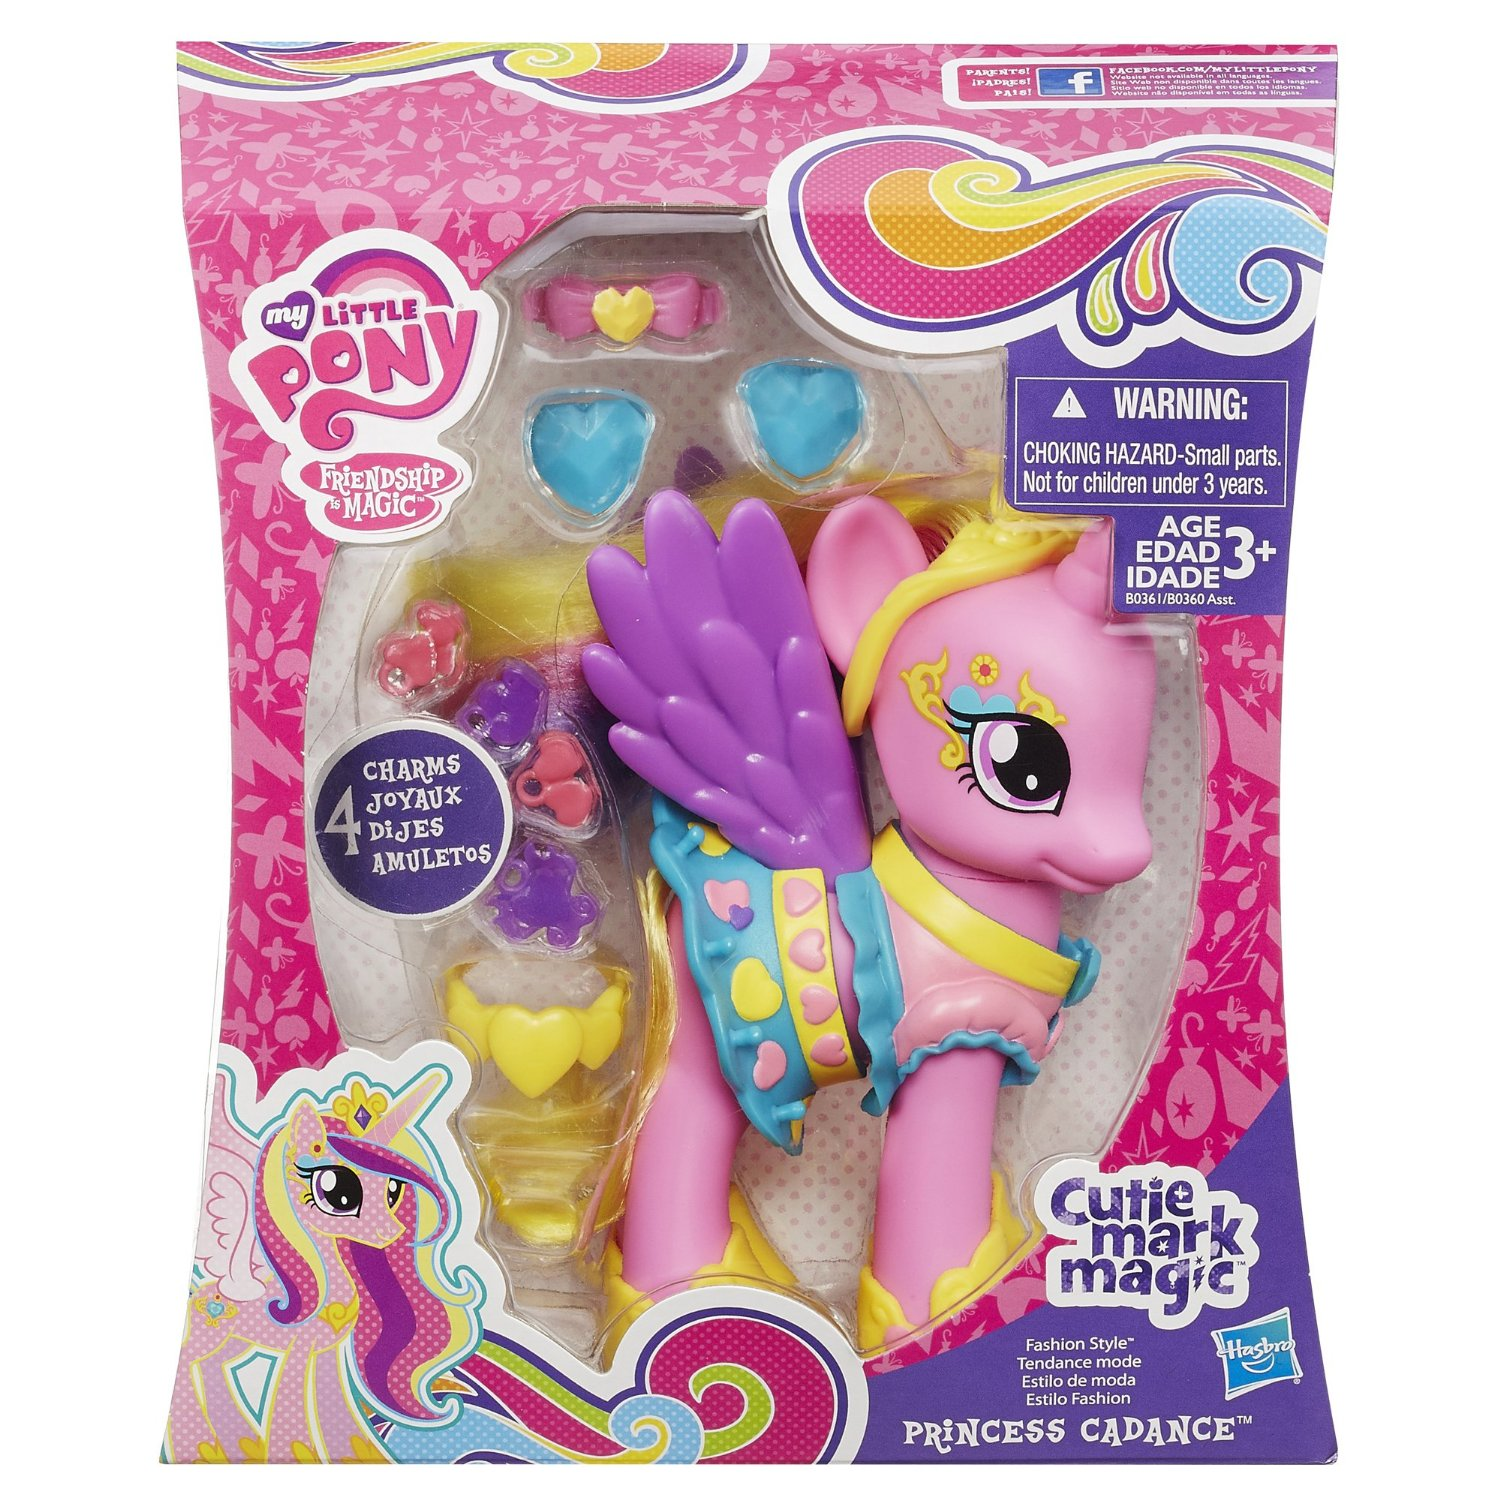 Image Cutie Mark Magic Princess Cadance Fashion Style Doll My Little Pony